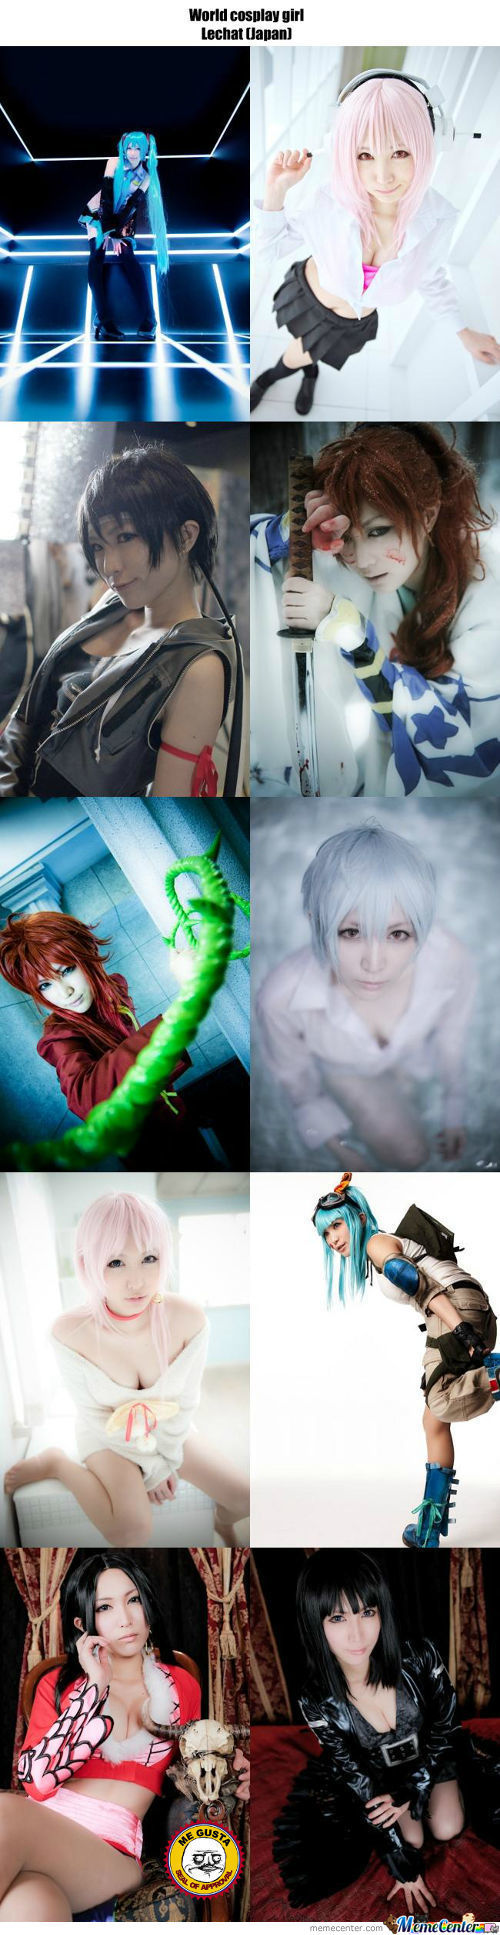 Cosplay Girl 93 : Lechat (Japan)